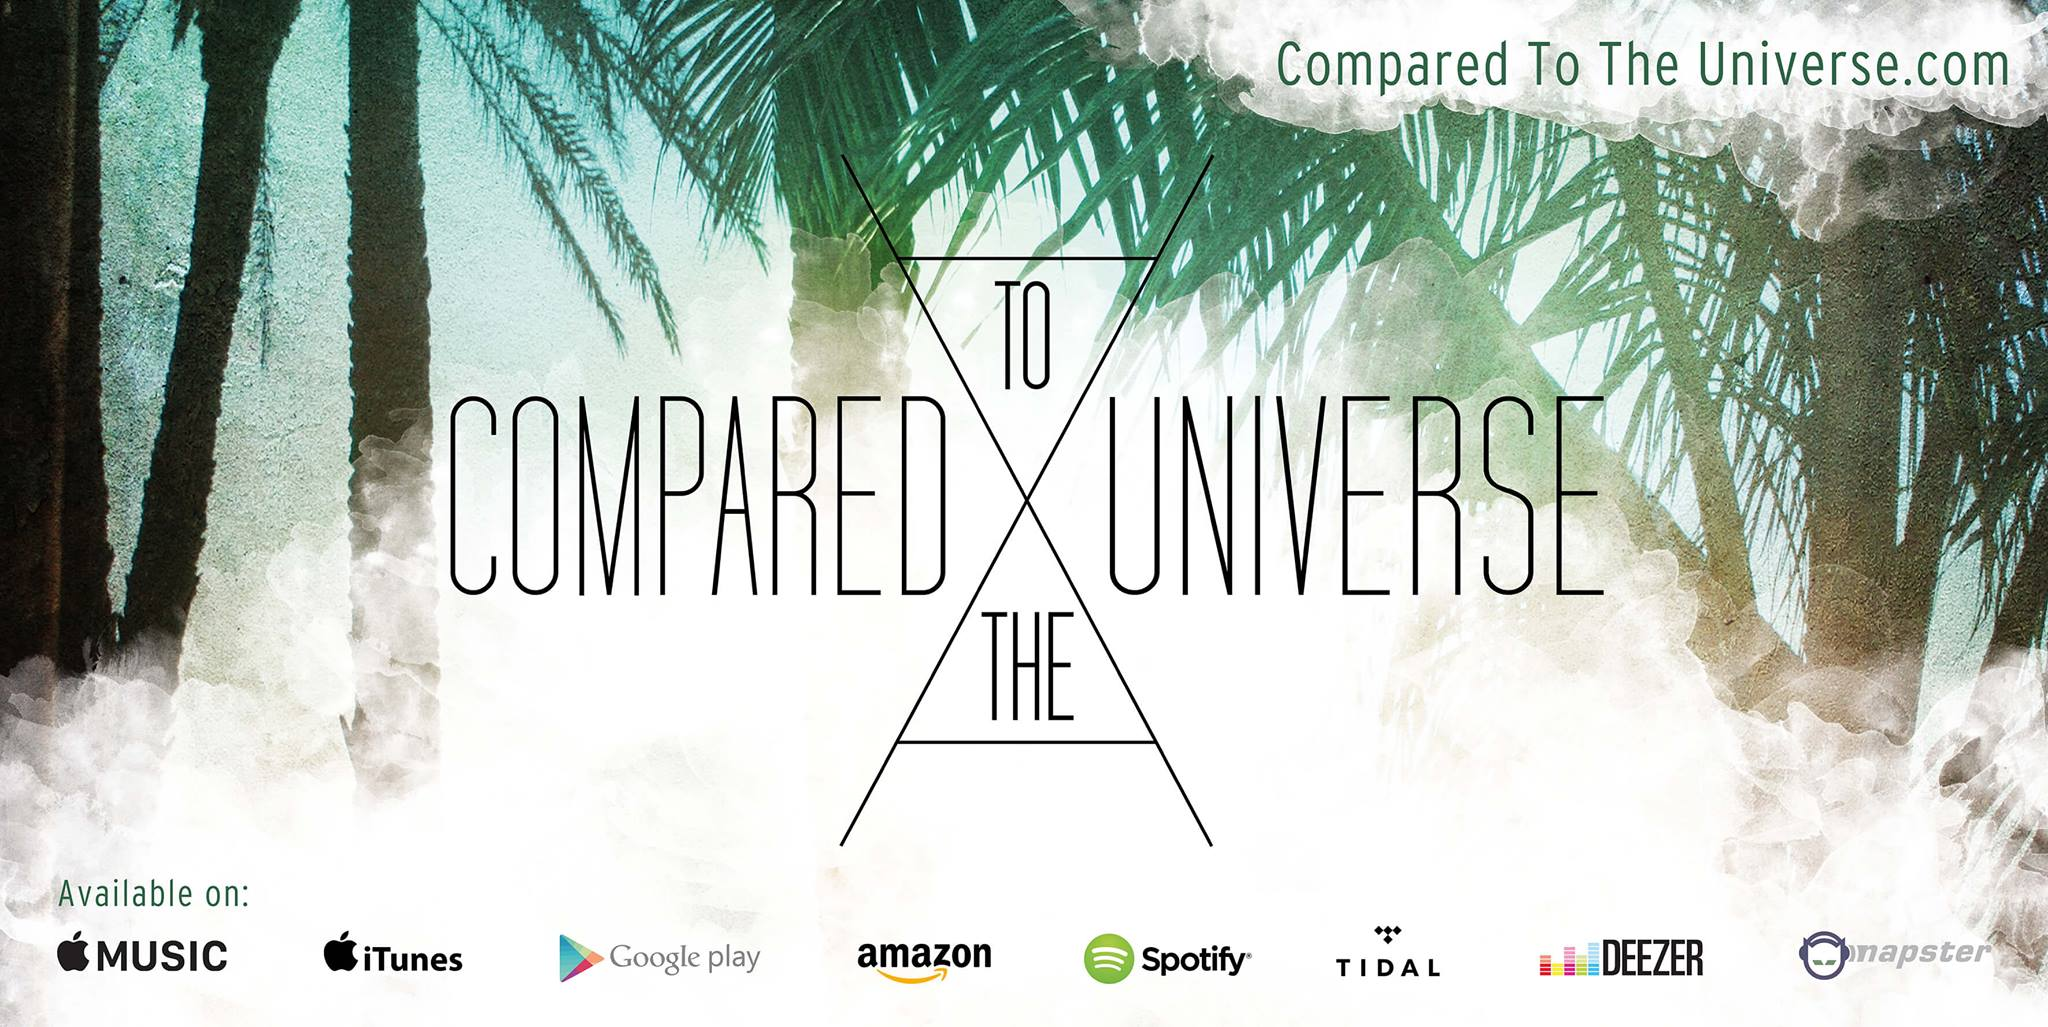 Compared to the Universe1.jpg